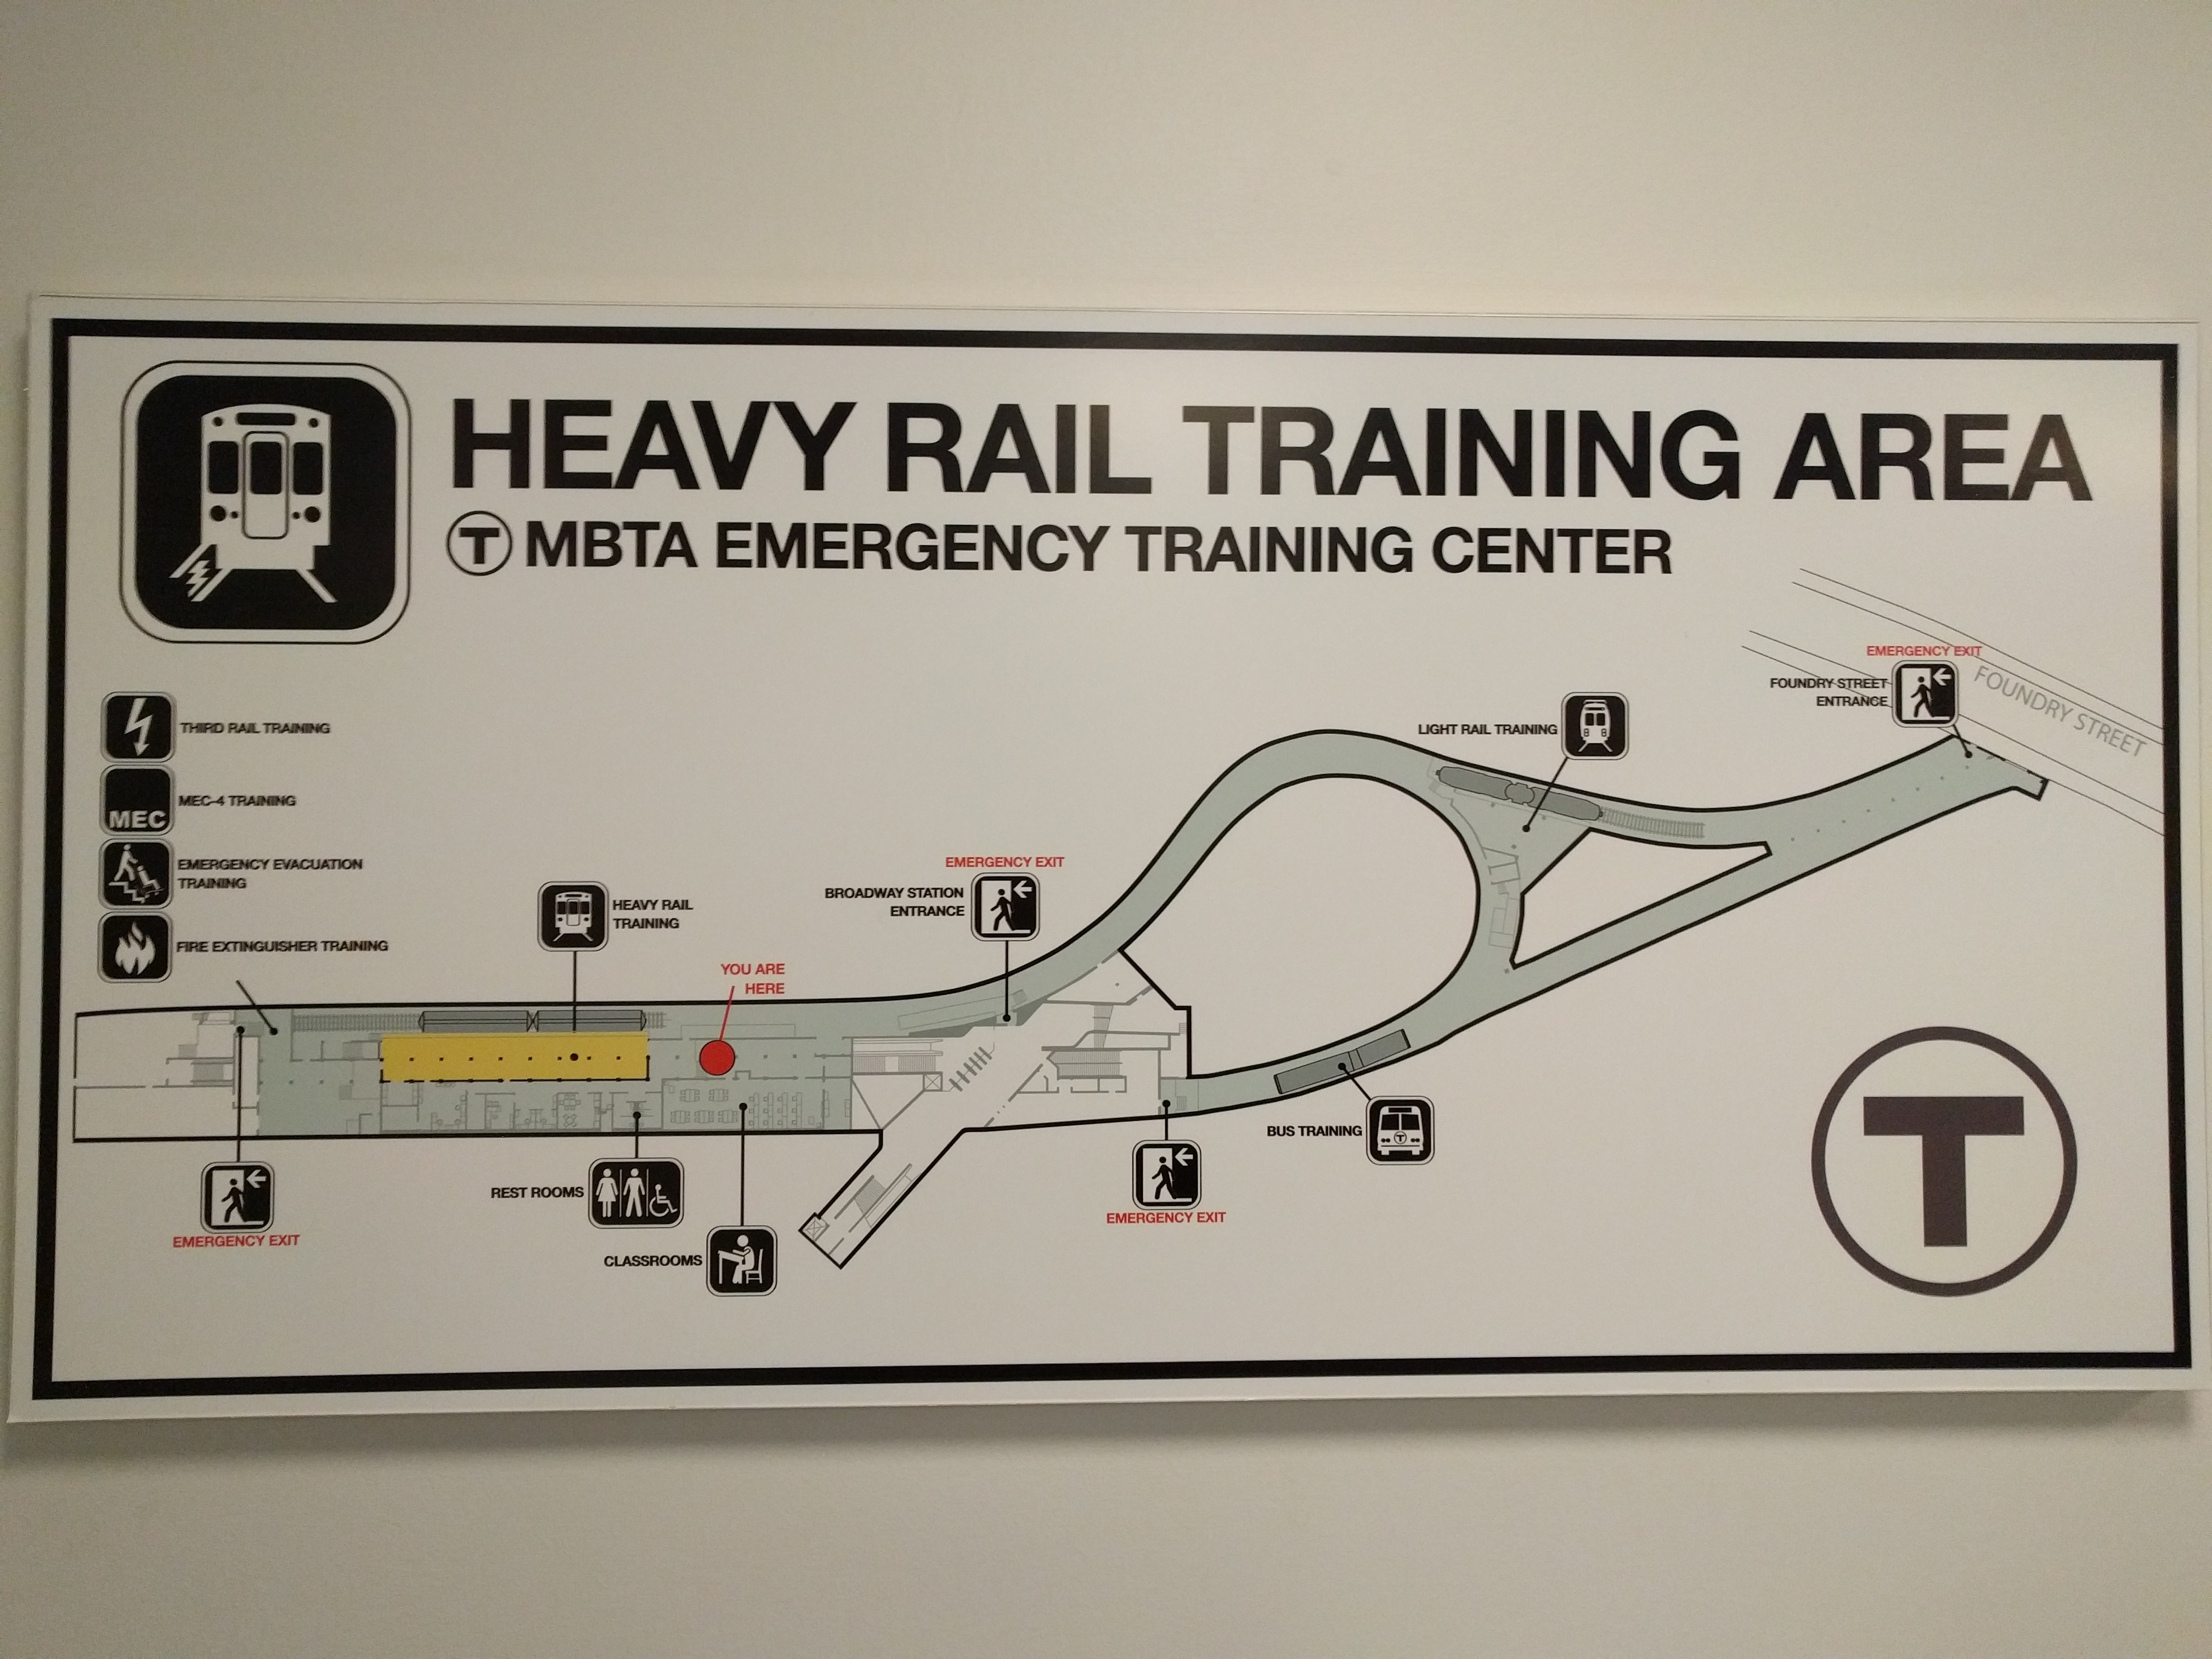 A scale map of the emergency training center, with icons showing different training areas. The tunnels clearly used to be a loop of track for trains to turn around.